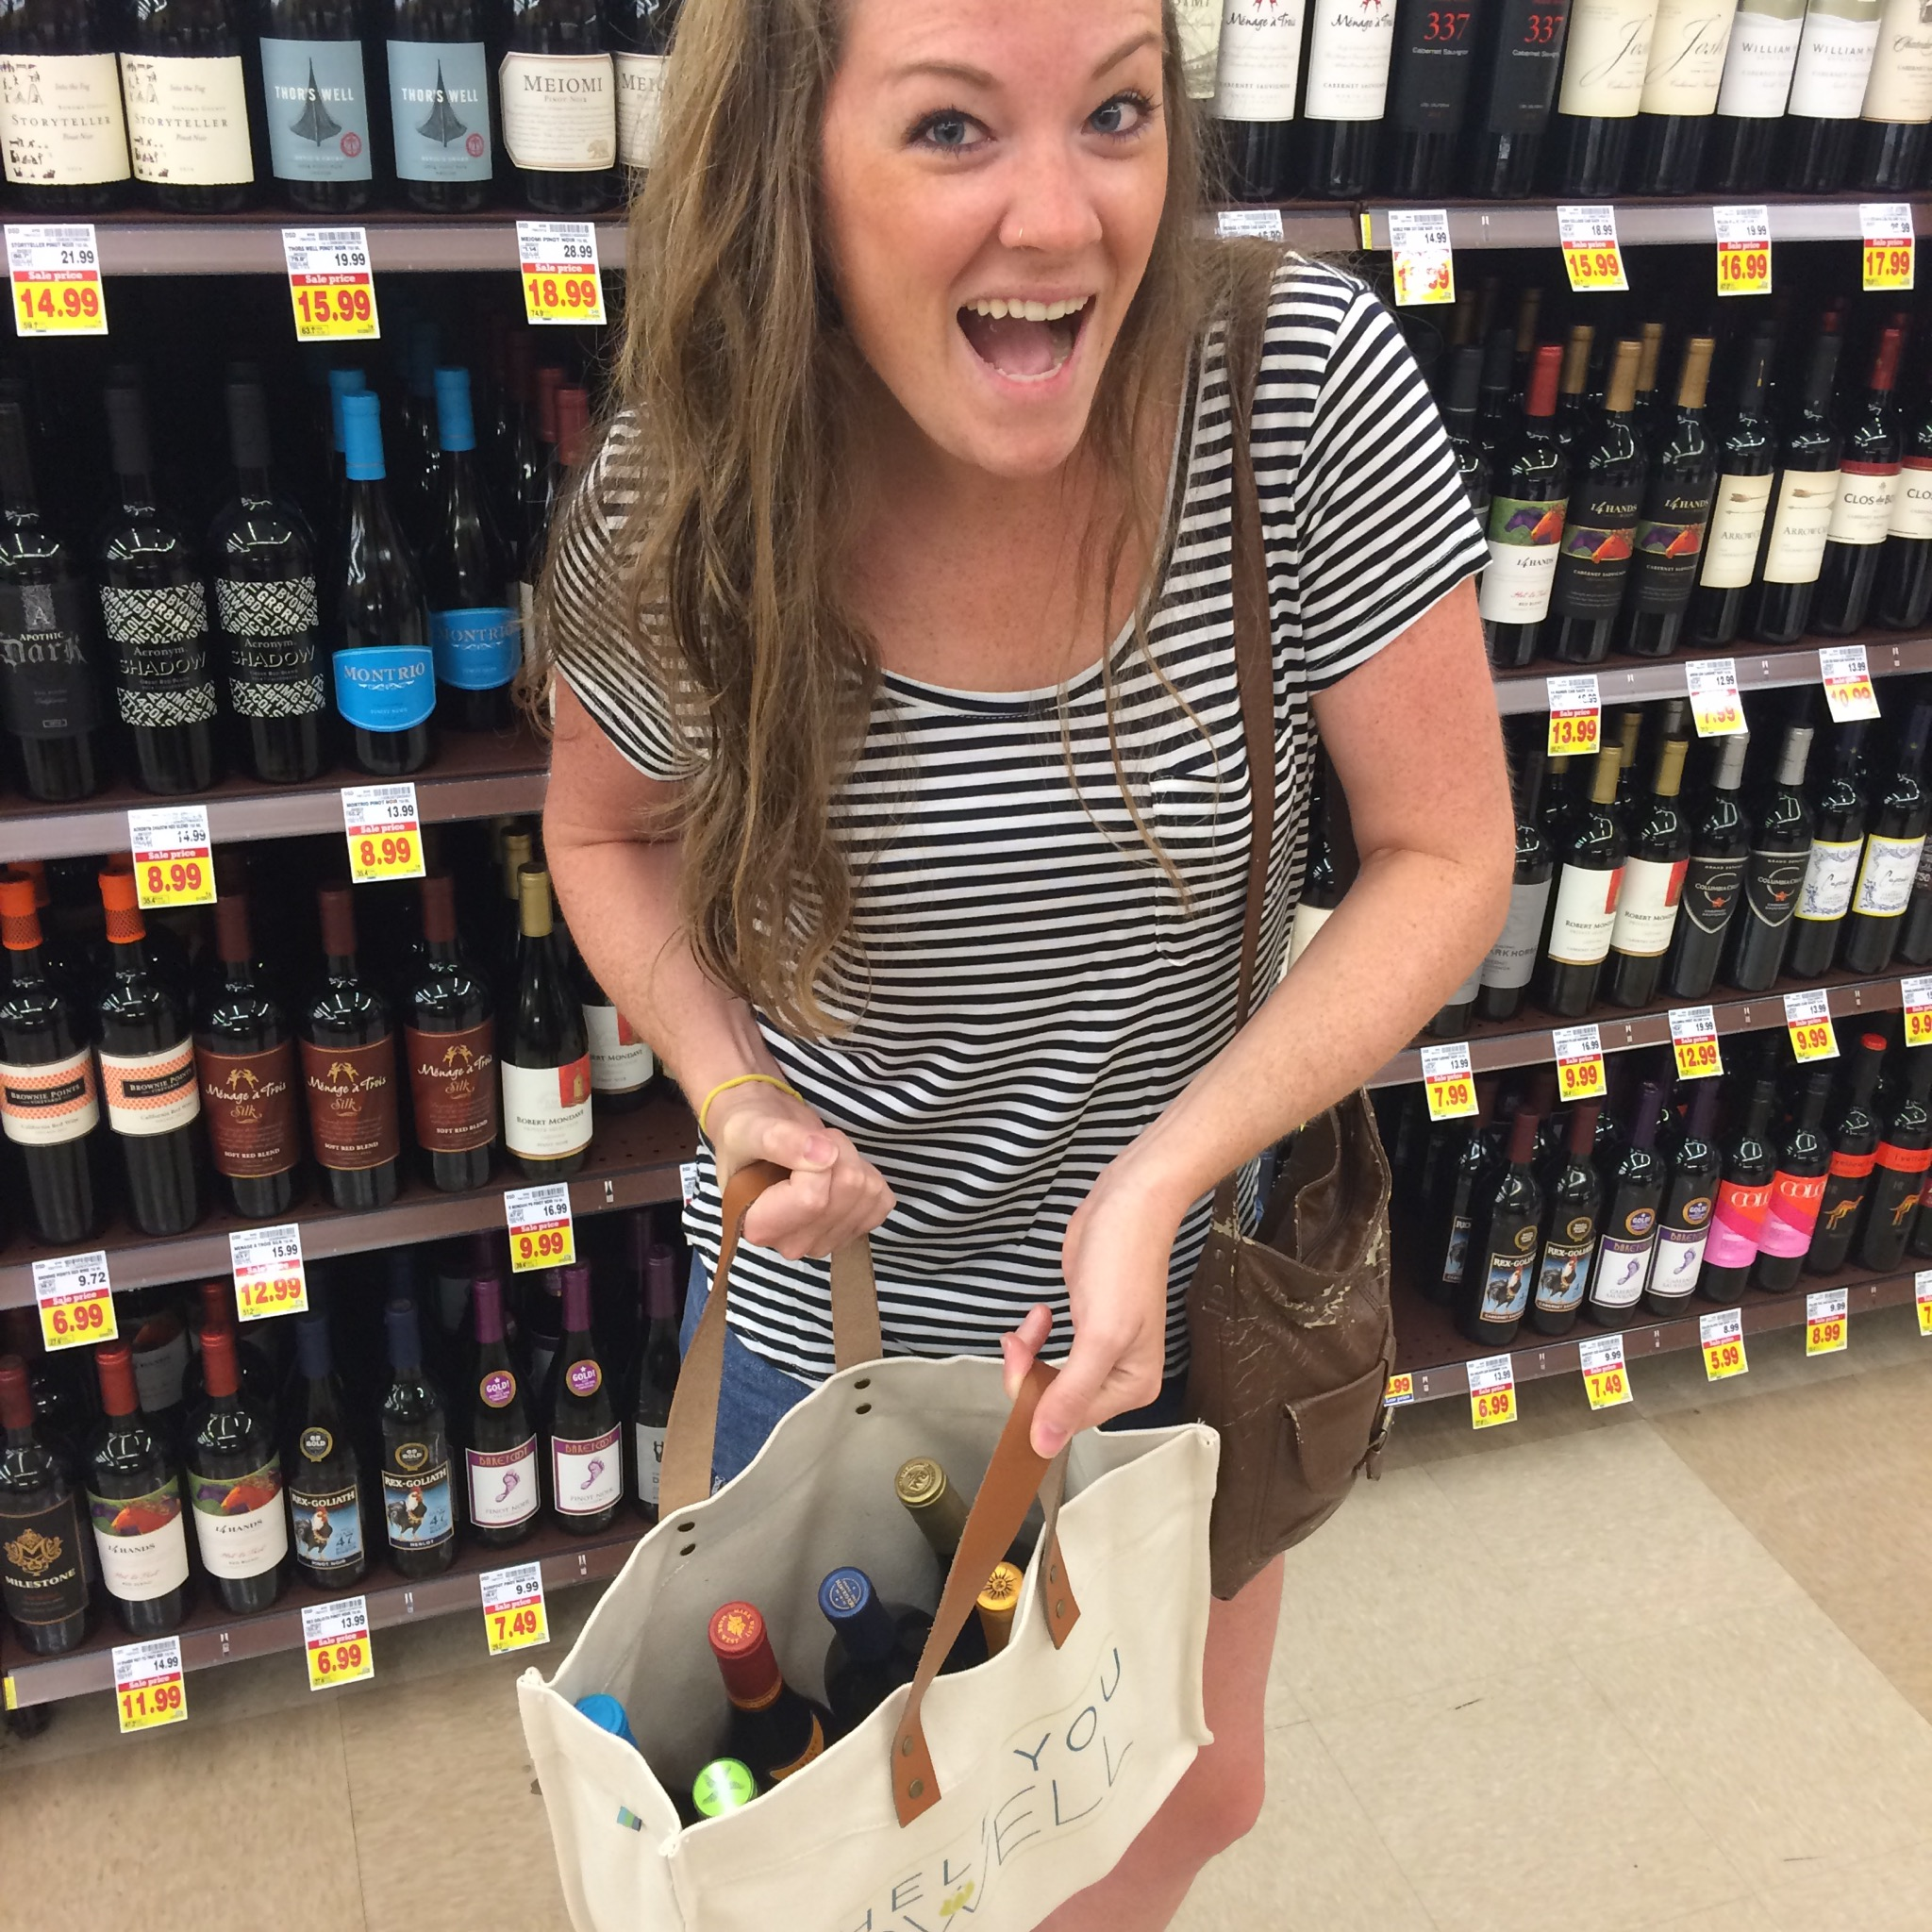 And to celebrate all the great uses of the HYD Canvas Tote... Lots of bottles of wine from your local Knoxville grocery stores will fit!